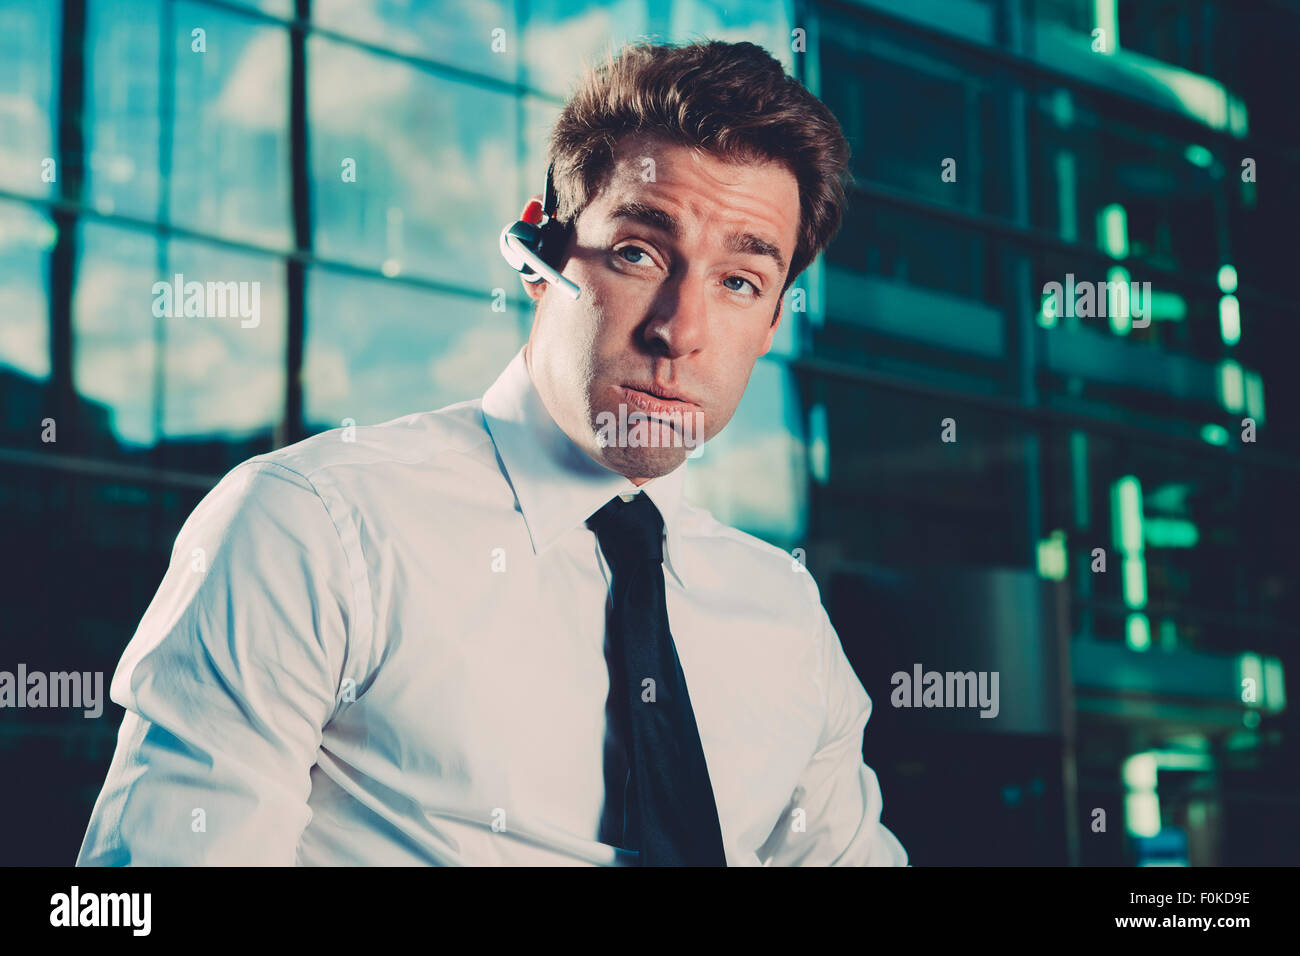 Businessman wearing bluetooth wireless device outside office building - Stock Image